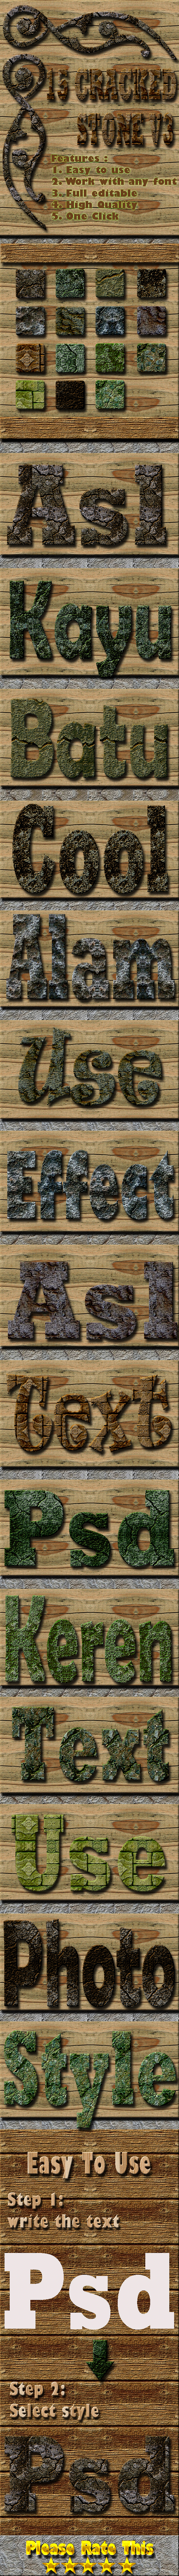 15 Cracked Stone Text Effect Style Vol 3 - Styles Photoshop